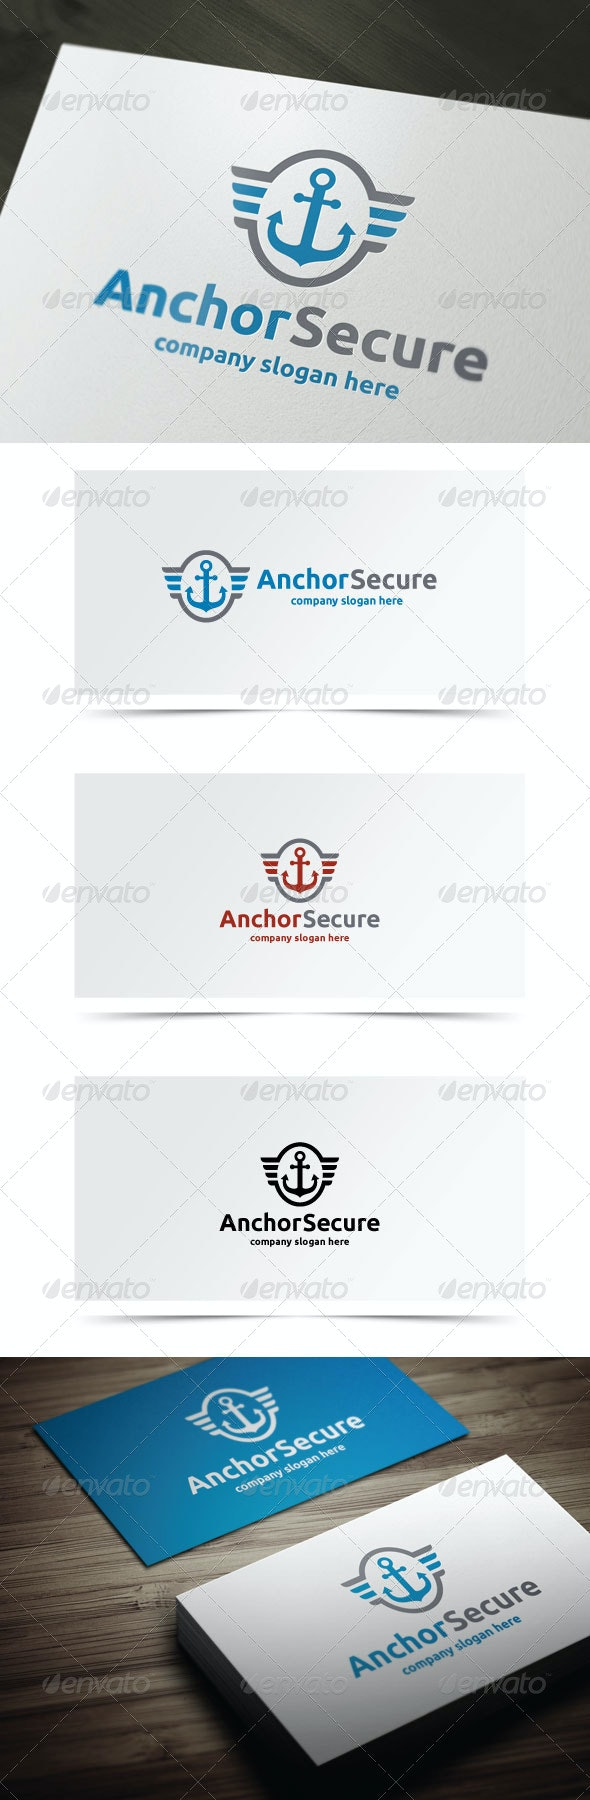 Anchor Secure - Objects Logo Templates